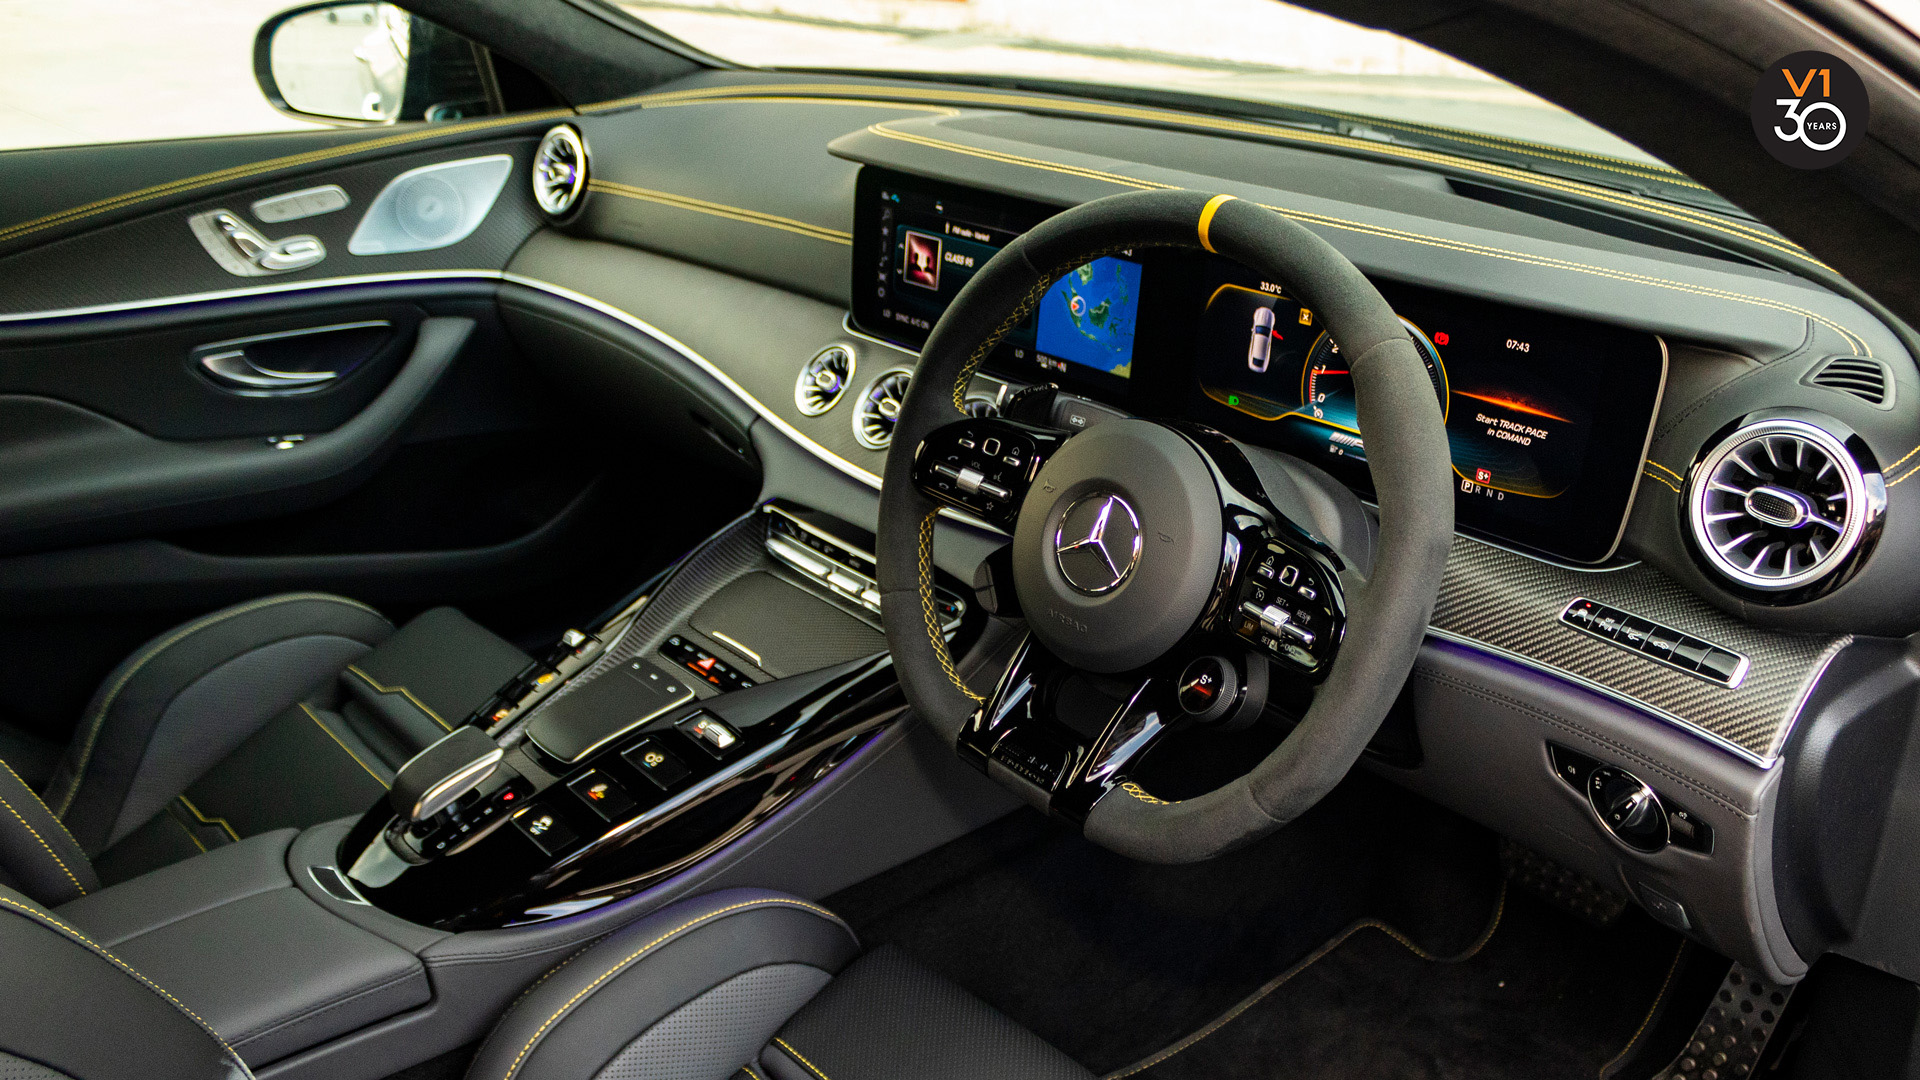 Mercedes GT63 S 4Matic+ Edition 1 AMG - Steering Wheel